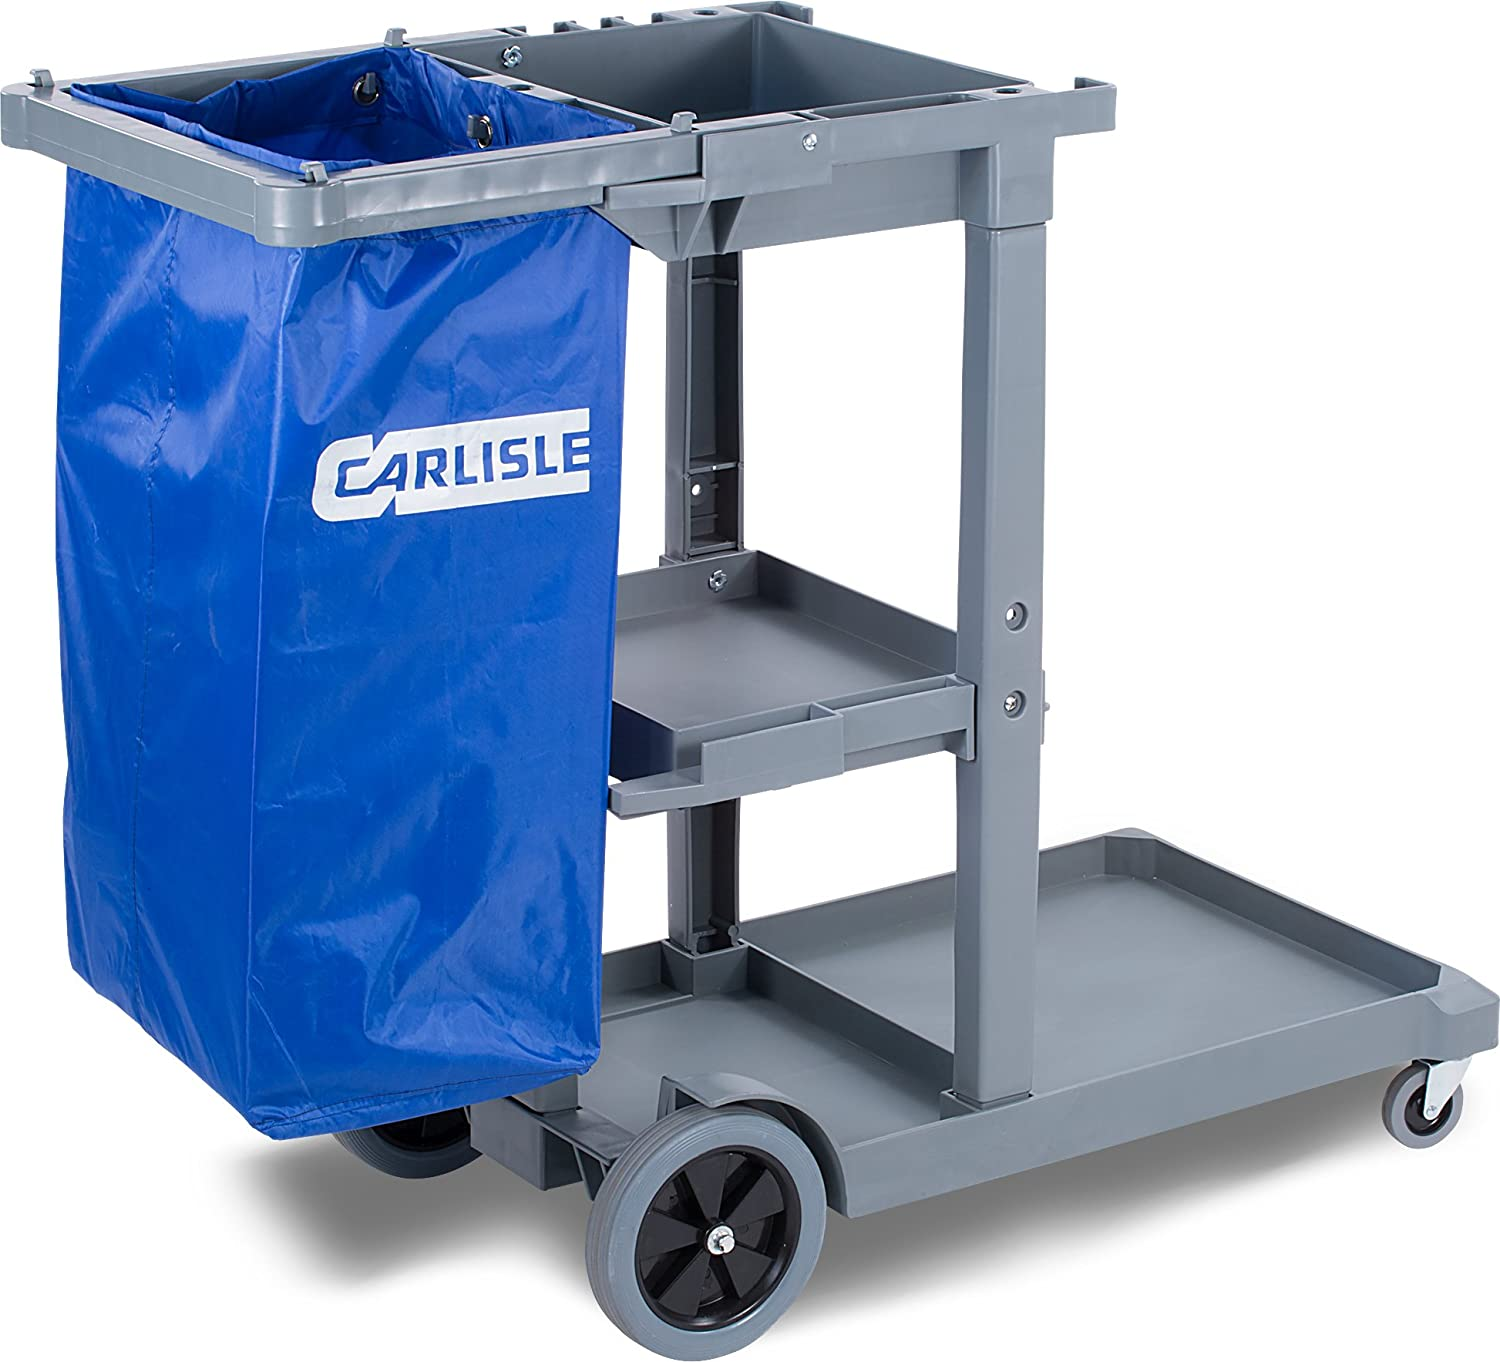 "Carlisle JC1945L23 Polyethylene Long Platform Janitorial Cart, 300 lbs  Capacity, 49"" Length x 19"" Width 39"" Height, Gray: Utility Carts:  Amazon.com: ..."